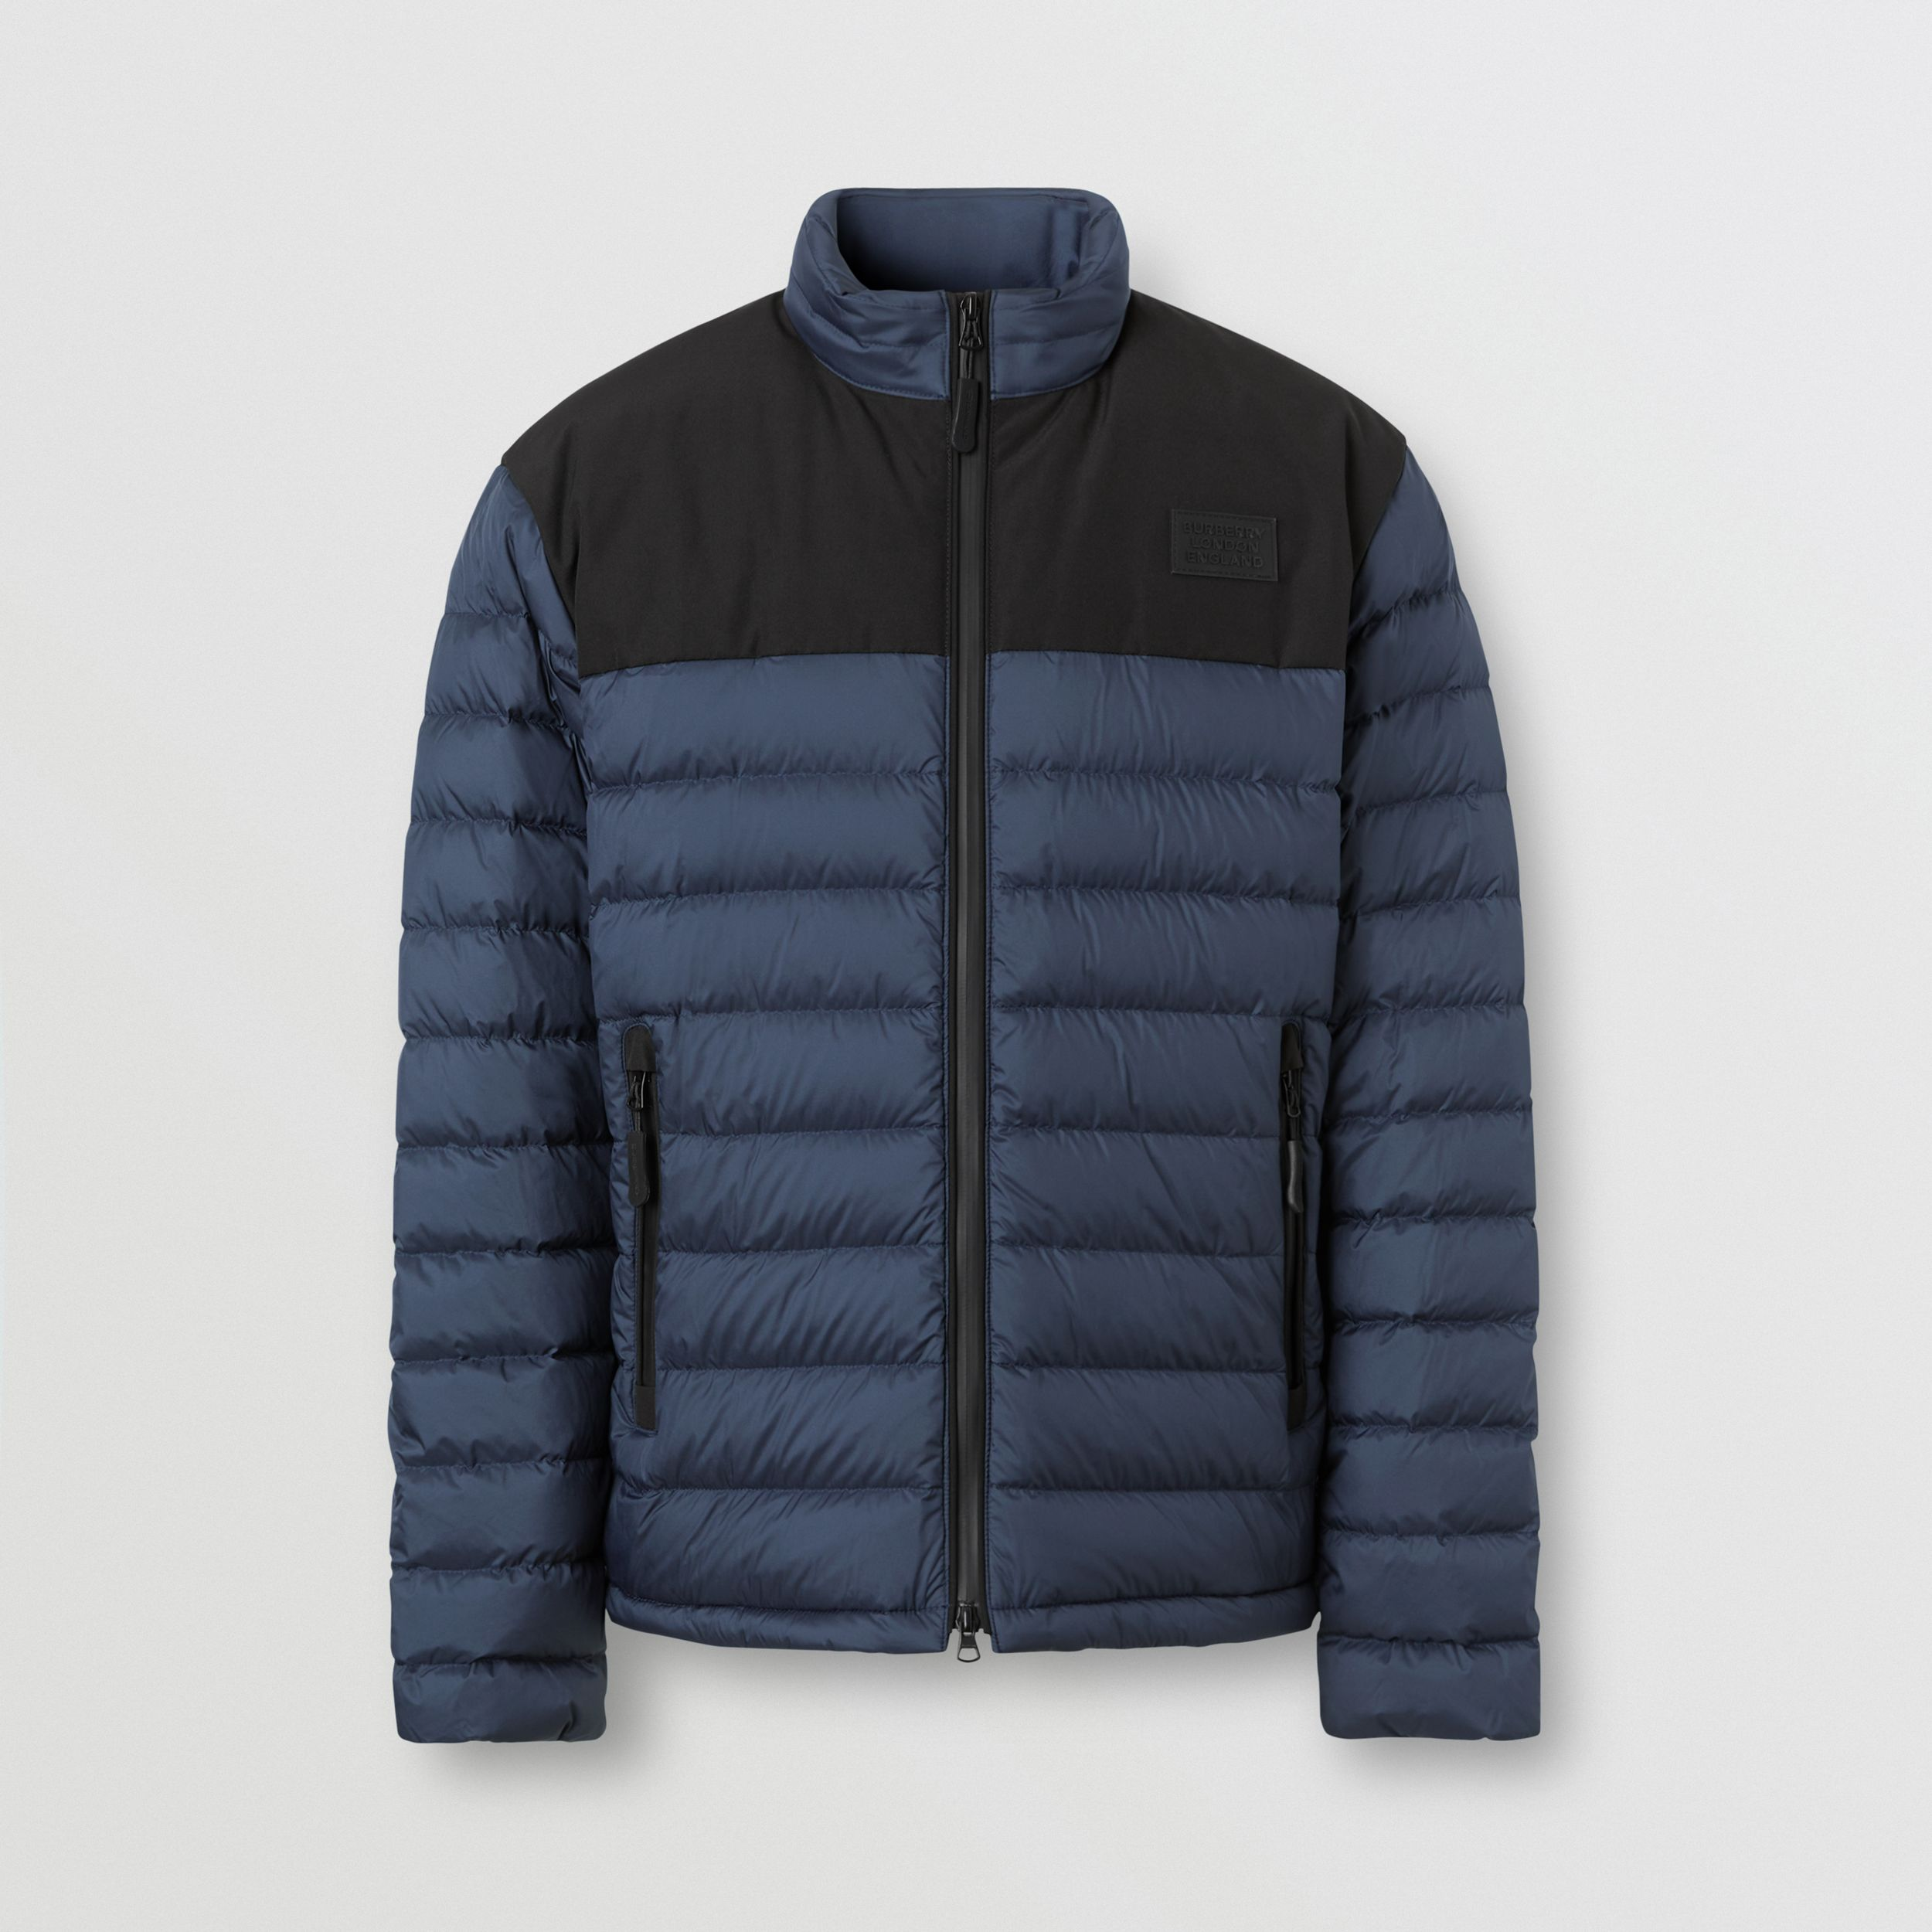 Logo Appliqué Lightweight Puffer Jacket in Navy - Men | Burberry - 4